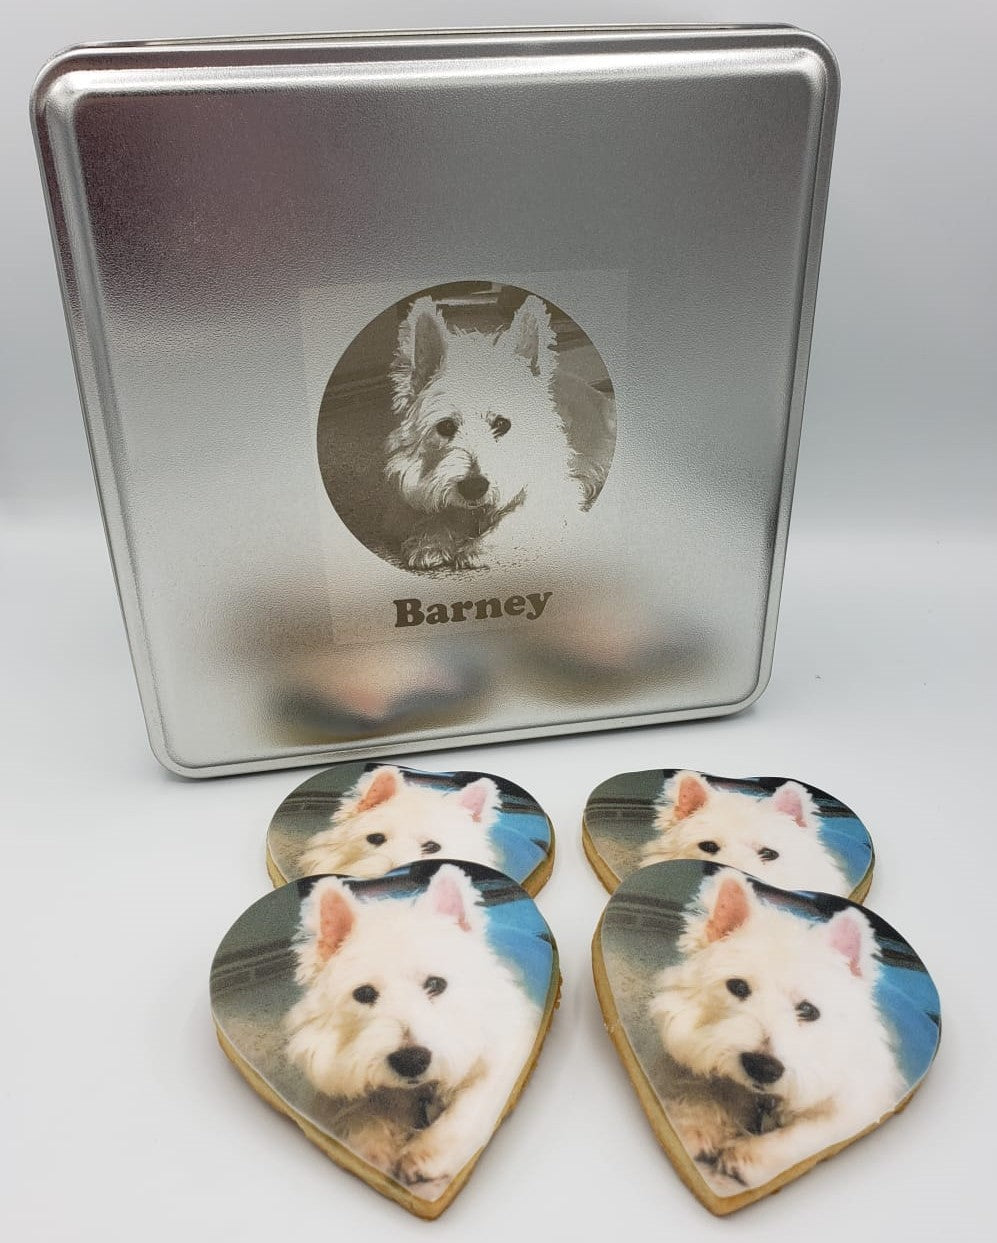 The Personalized Pet Lover's Photo Cookie Box